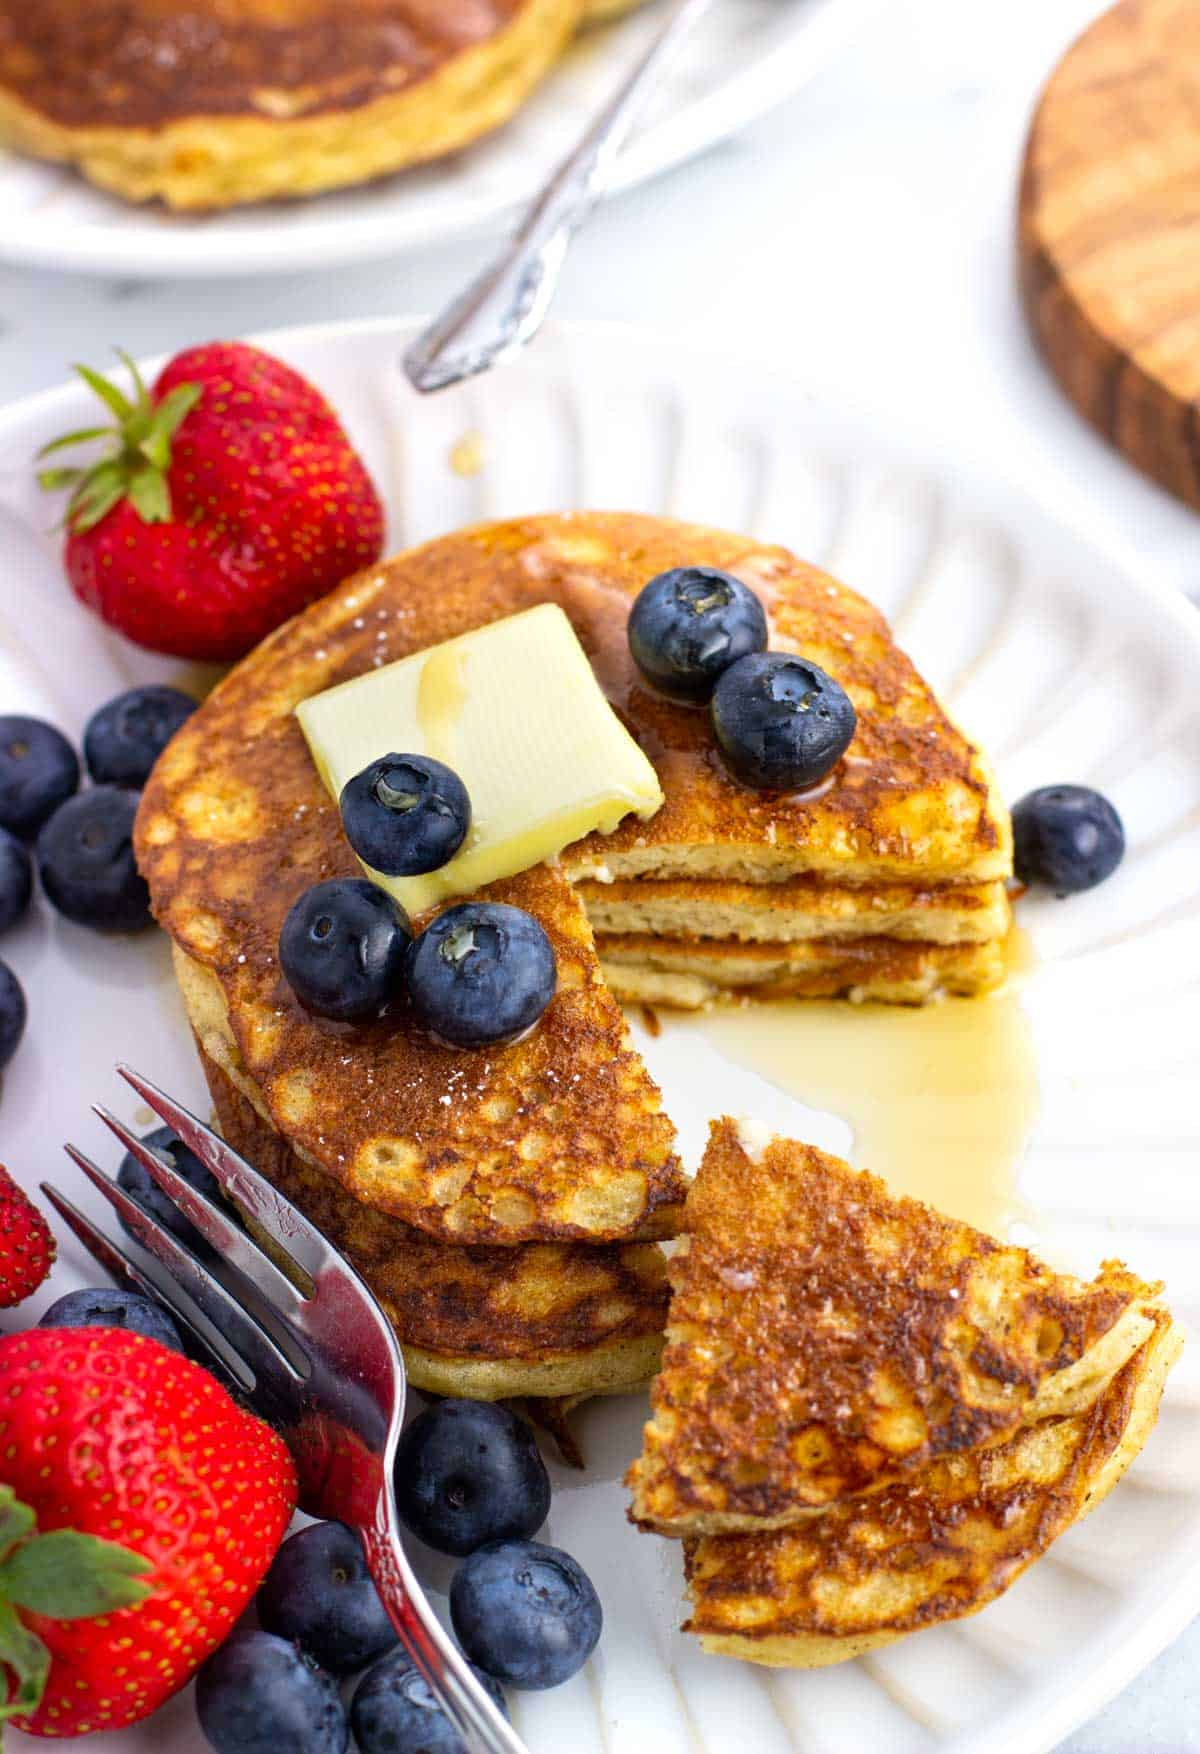 A stack of pancakes topped with a pat of butter with a wedge cut out.